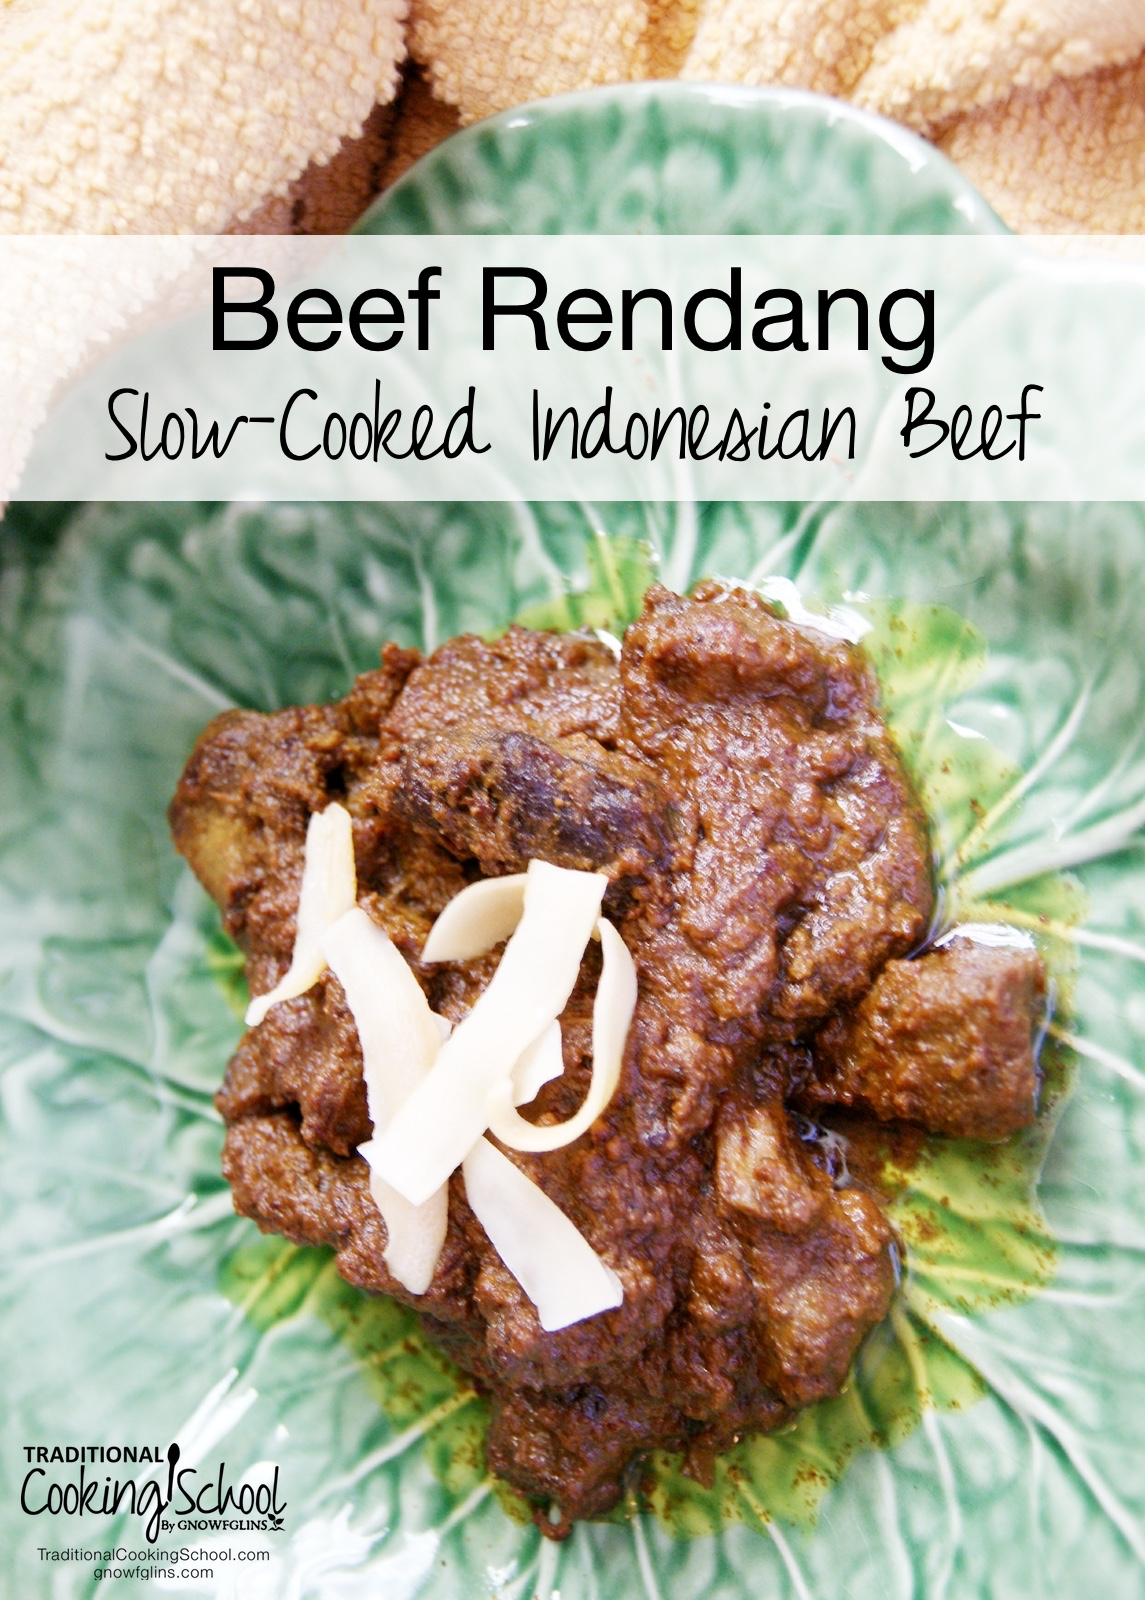 Beef Rendang {Slow-Cooked Indonesian Beef} | Beef rendang is a common Indonesian beef stew simmered in coconut sauce. This easy and healthy recipe cooks low and long on the stove top, filling your home with fragrant Asian spices. Serve with some soaked rice or cauli-rice! | TraditionalCookingSchool.com